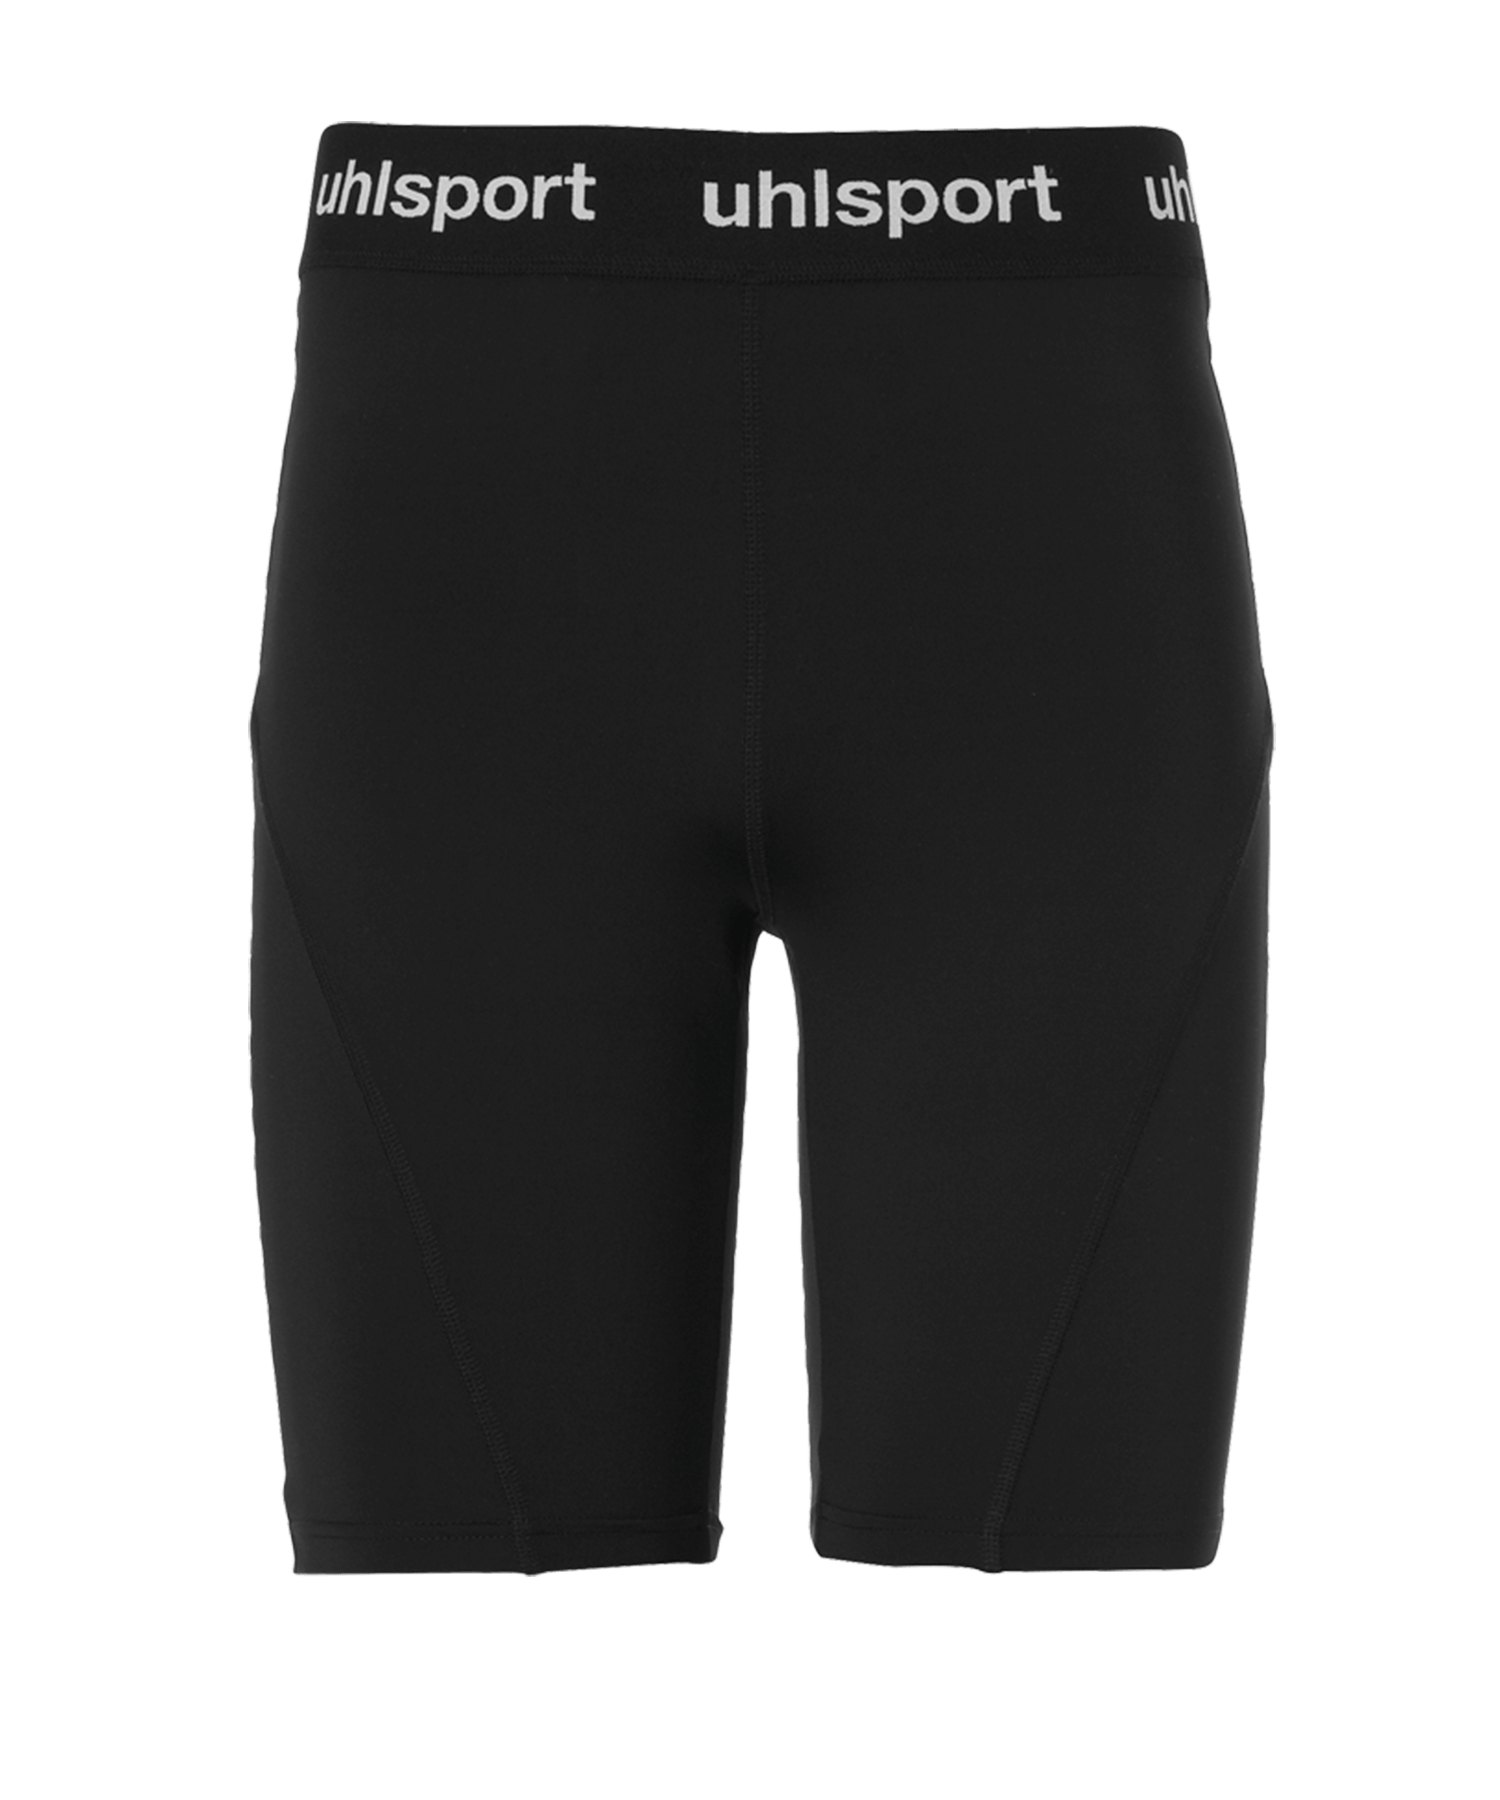 Uhlsport Tight Short Hose kurz Kids Schwarz F01 - schwarz